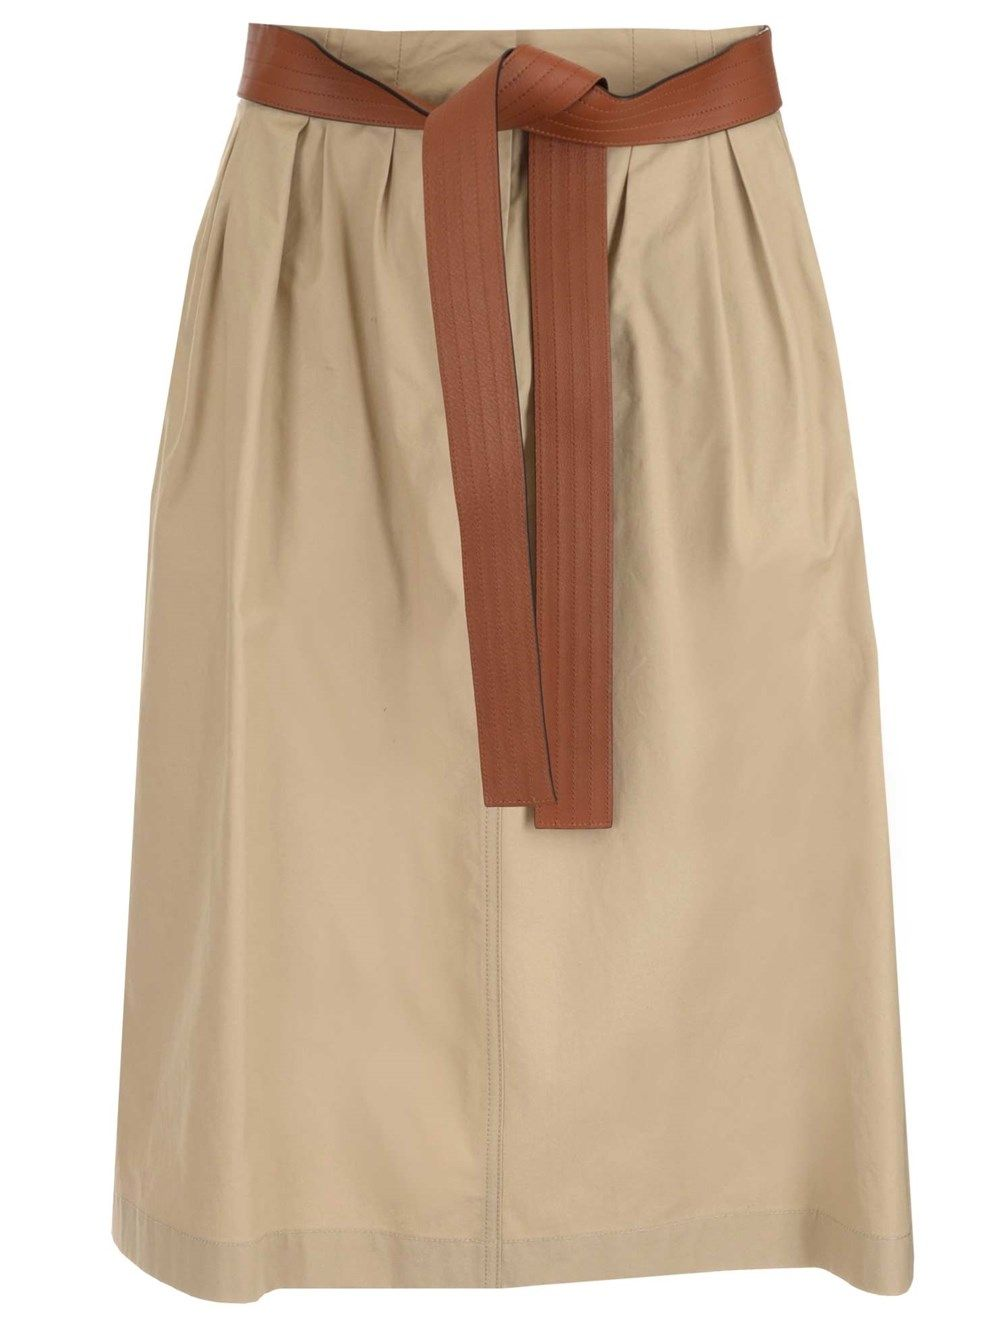 Loewe Cottons LOEWE WOMEN'S BEIGE COTTON SKIRT